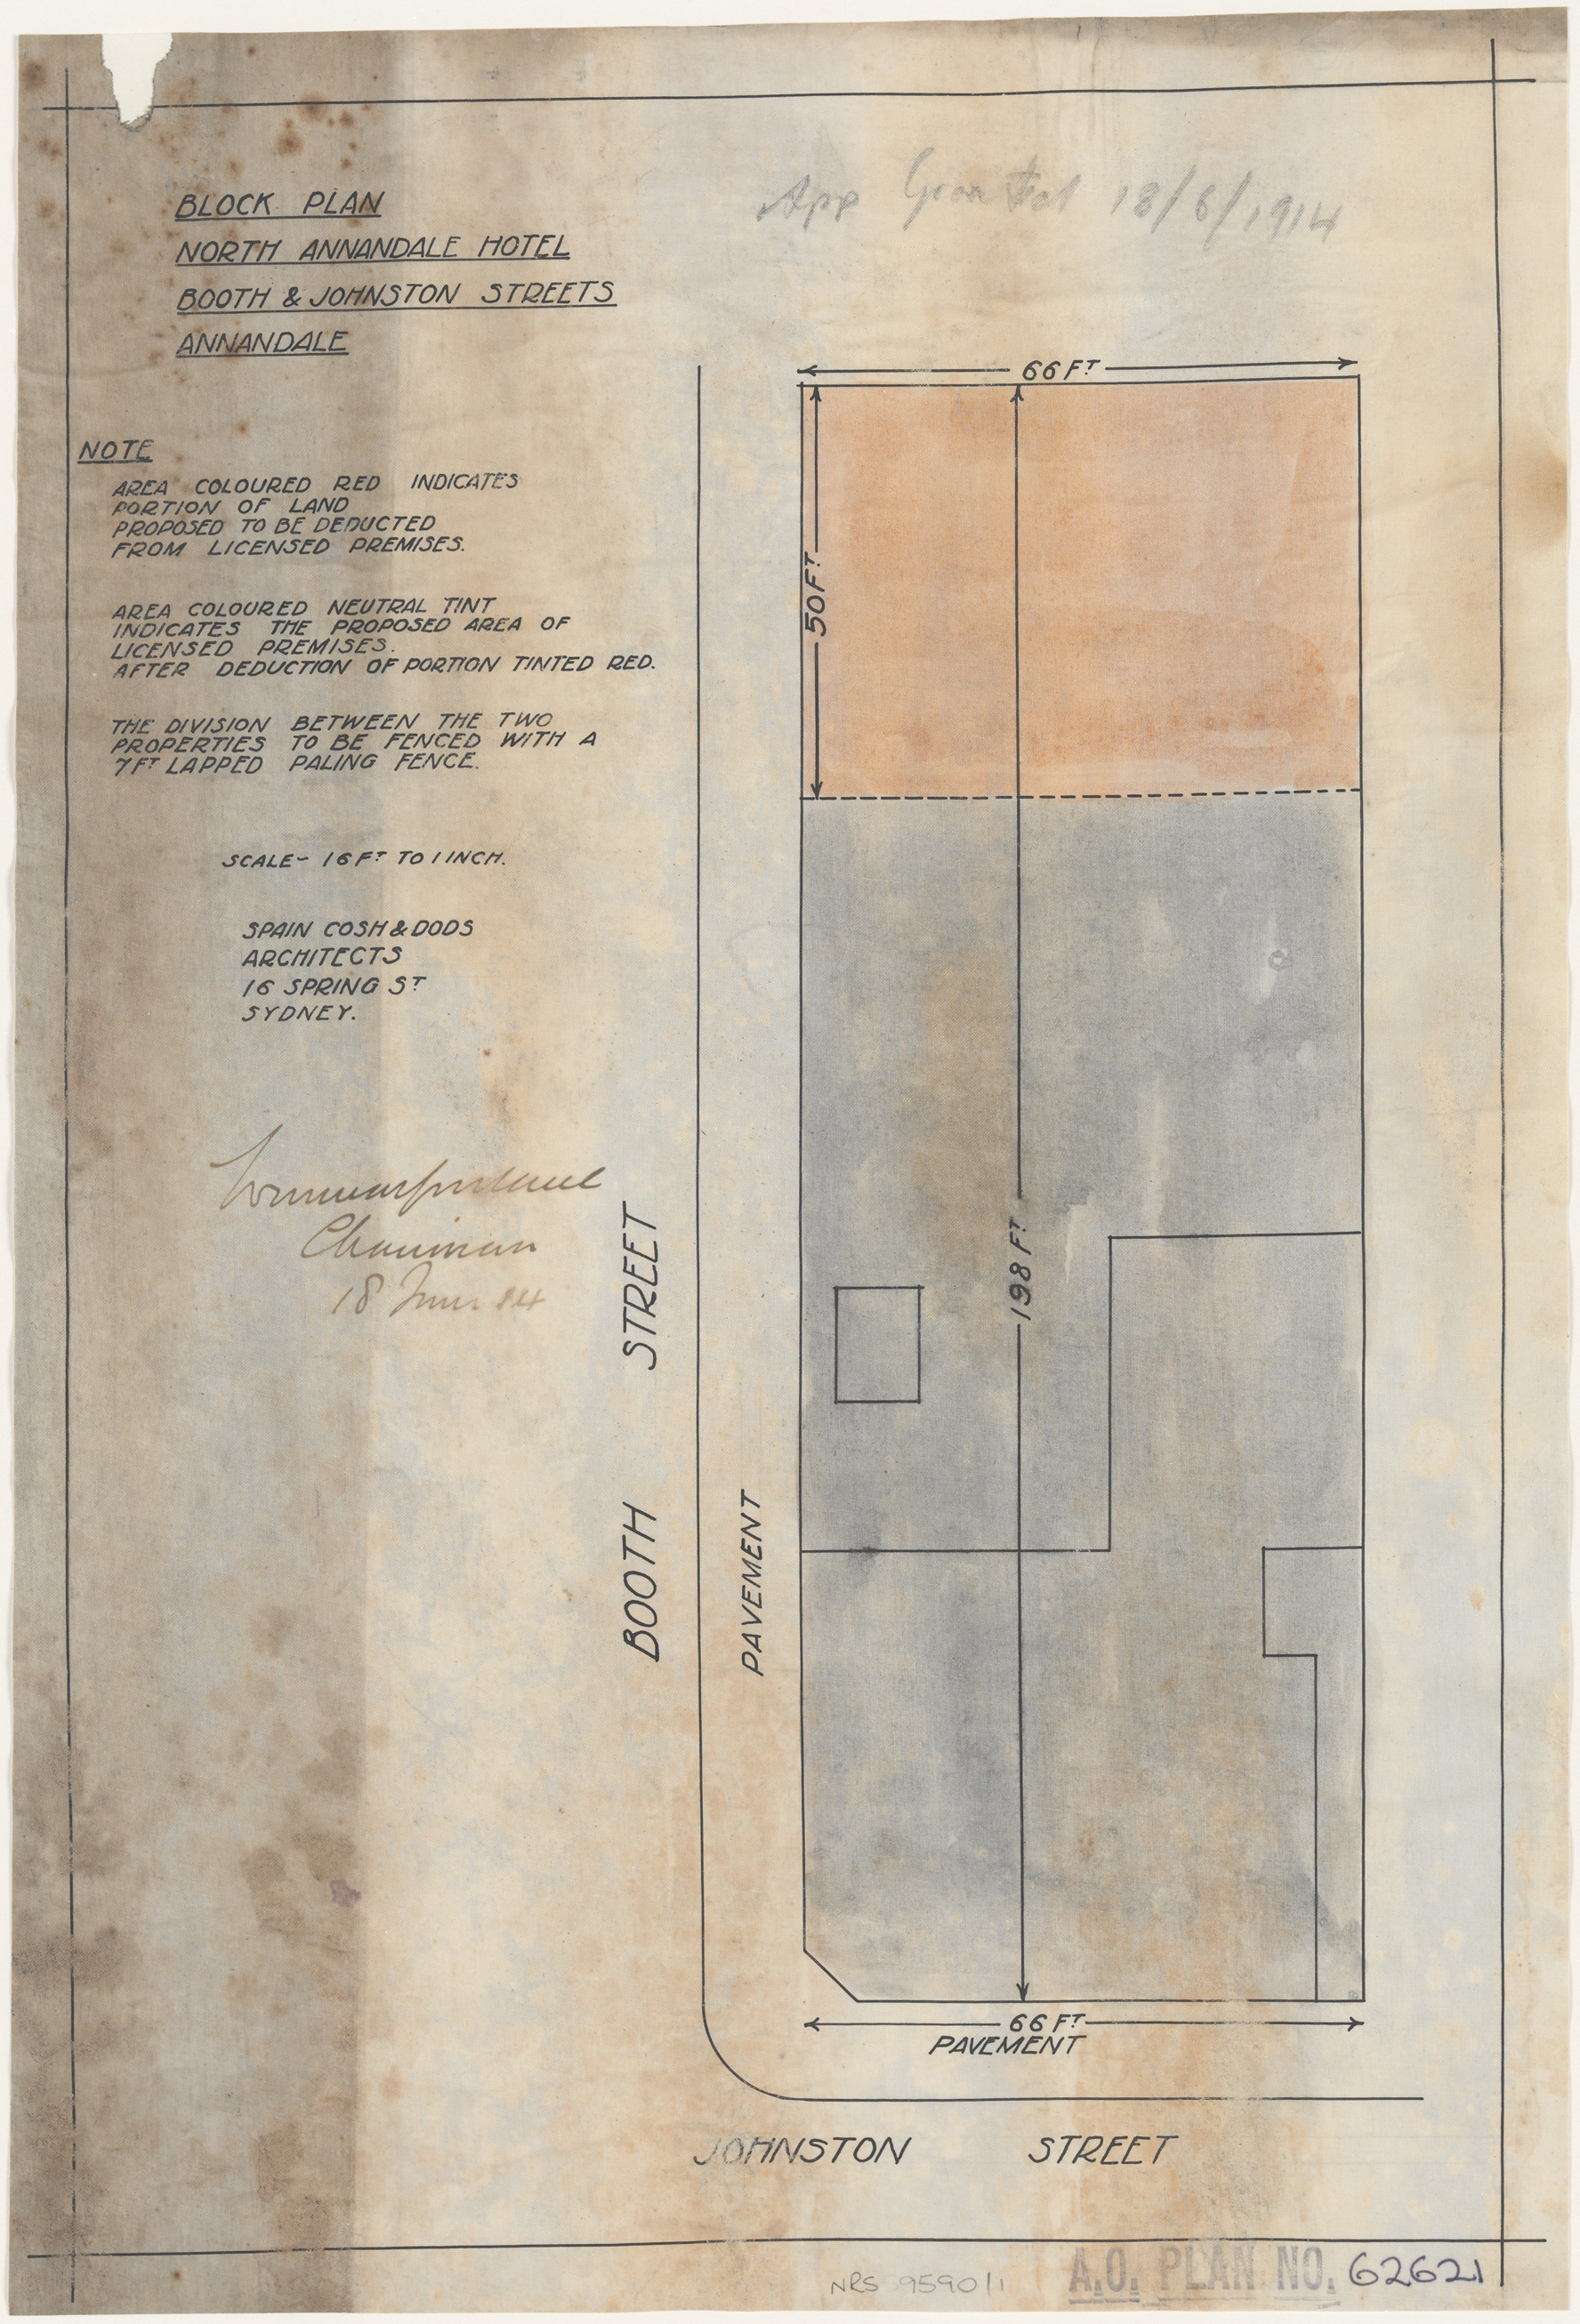 Booth and Johnston Streets, Annandale, Block plan for North Annandale Hotel, Architect Spain, Cosh and Dods, 16 Spring Street, Sydney, Application granted 18 June 1914